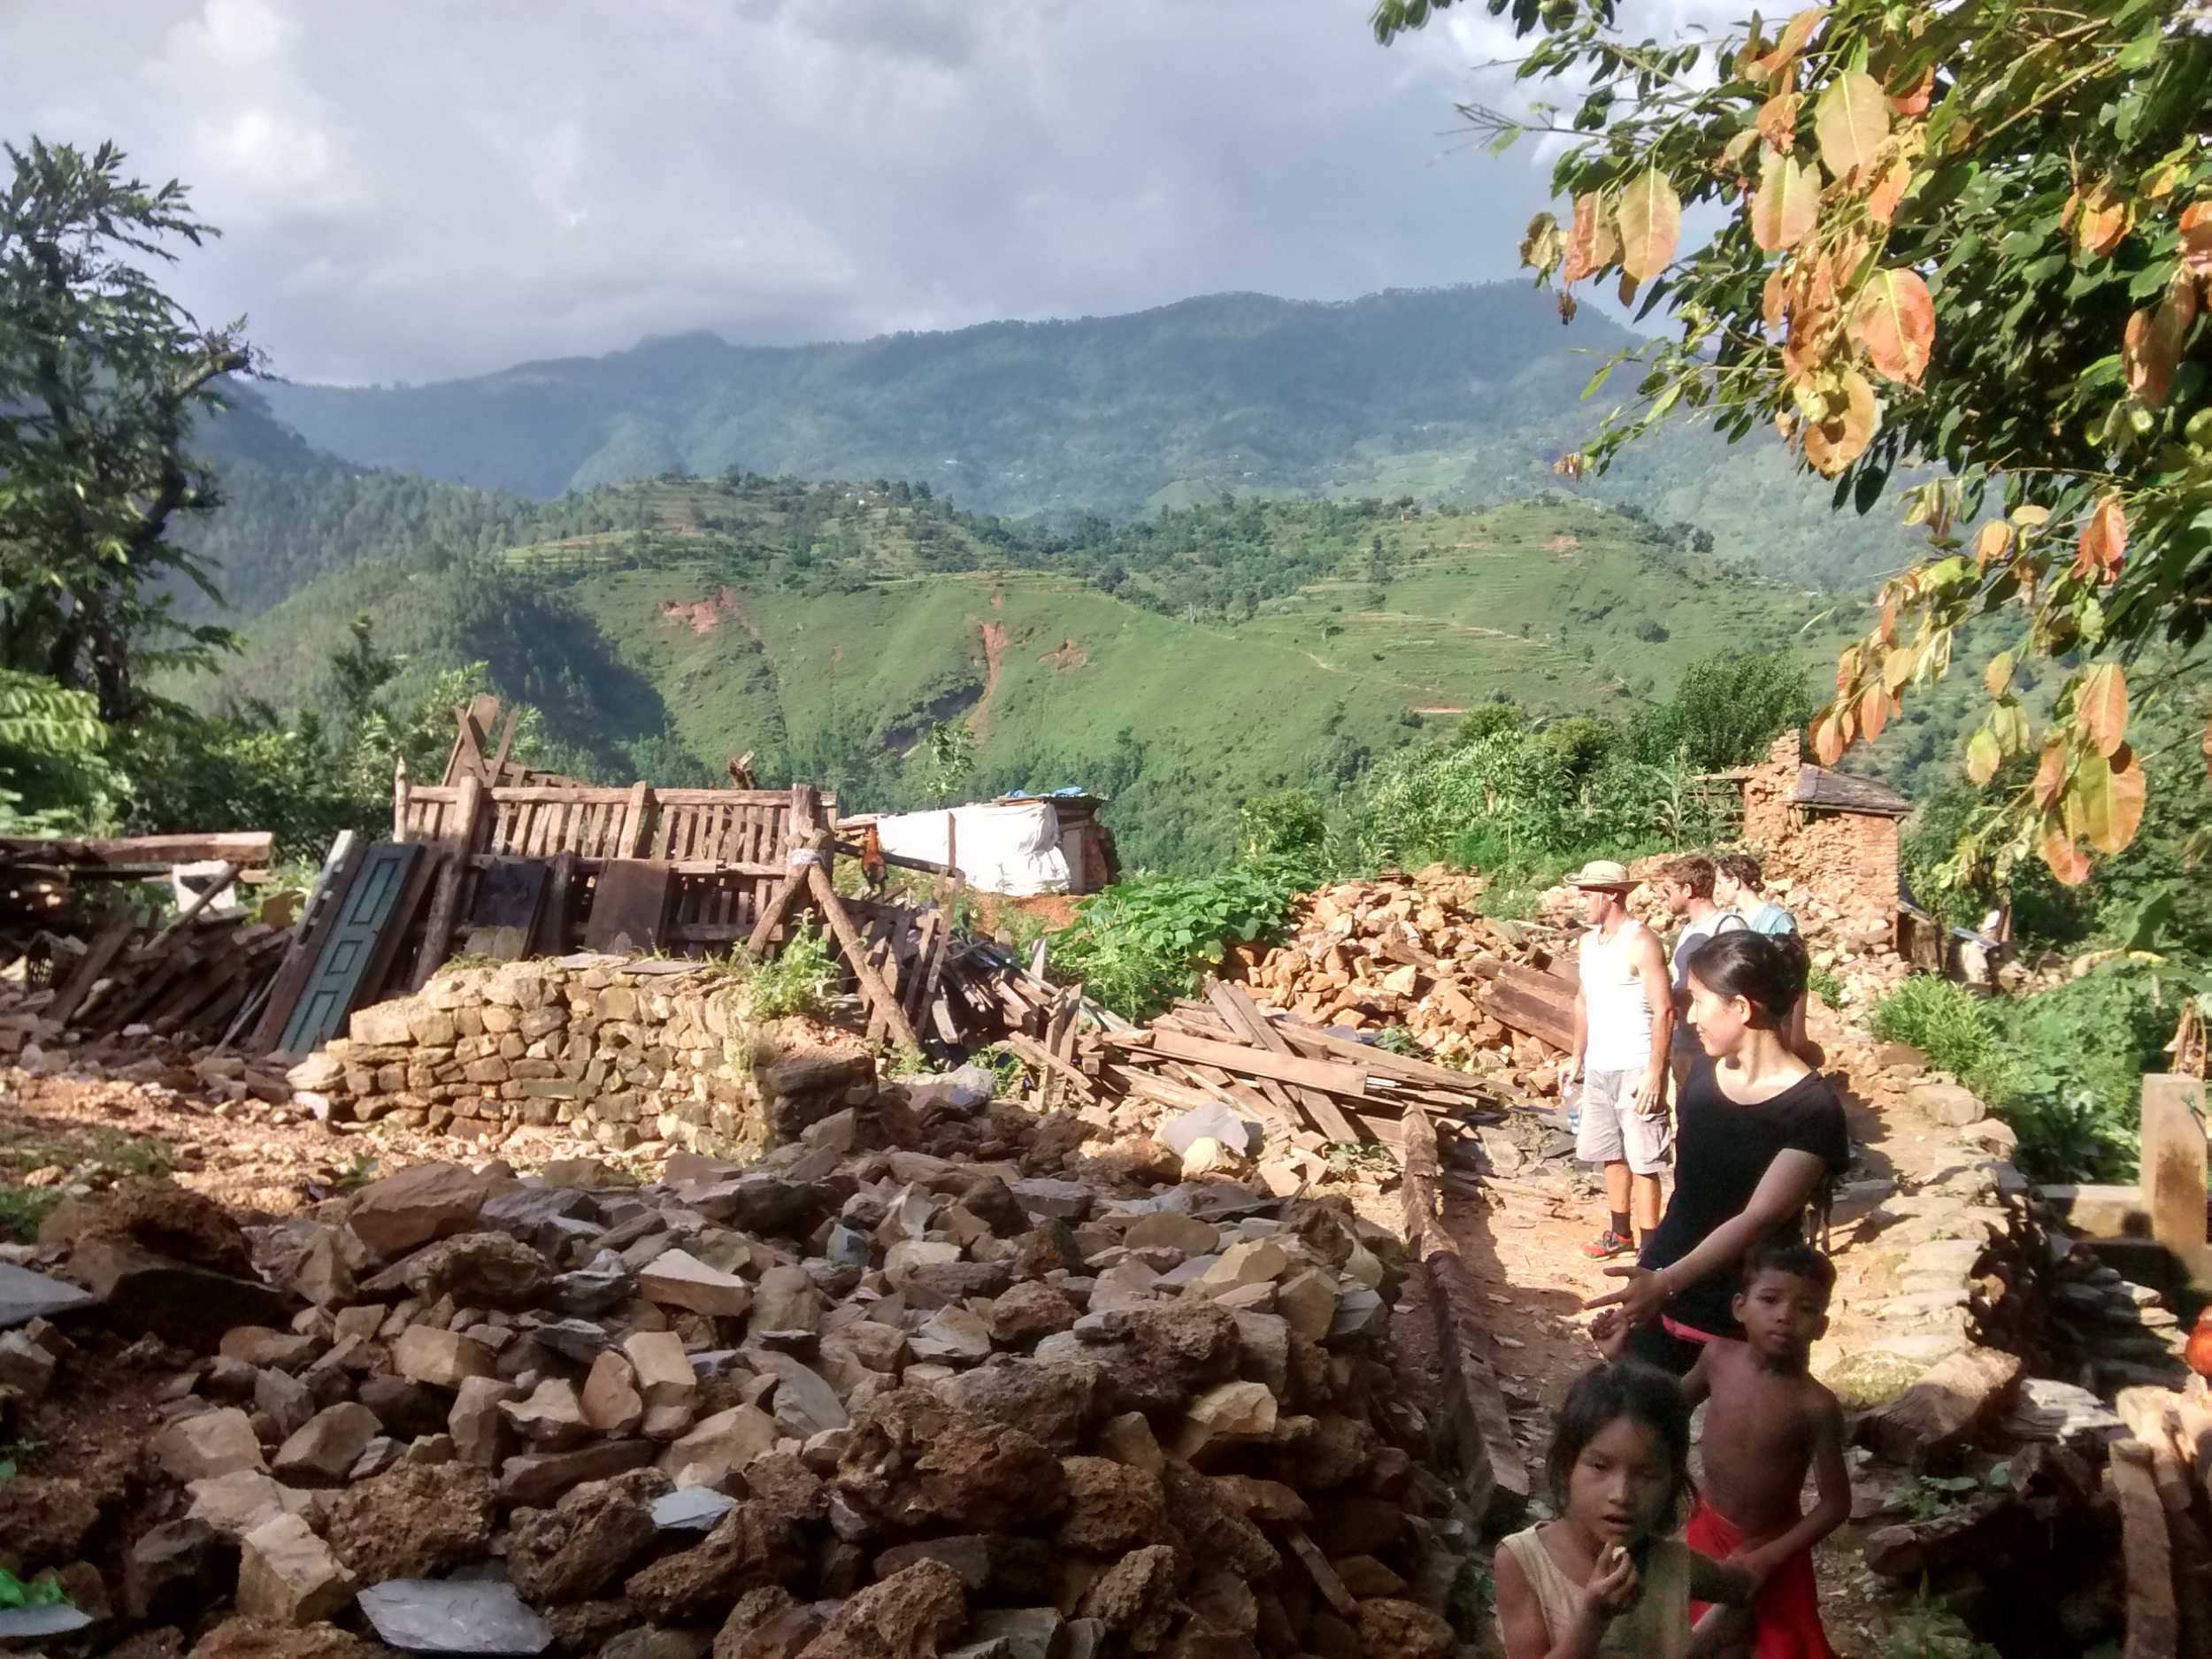 During the last few months we have transitioned out of the village in Dhading that we were serving following the earthquake.